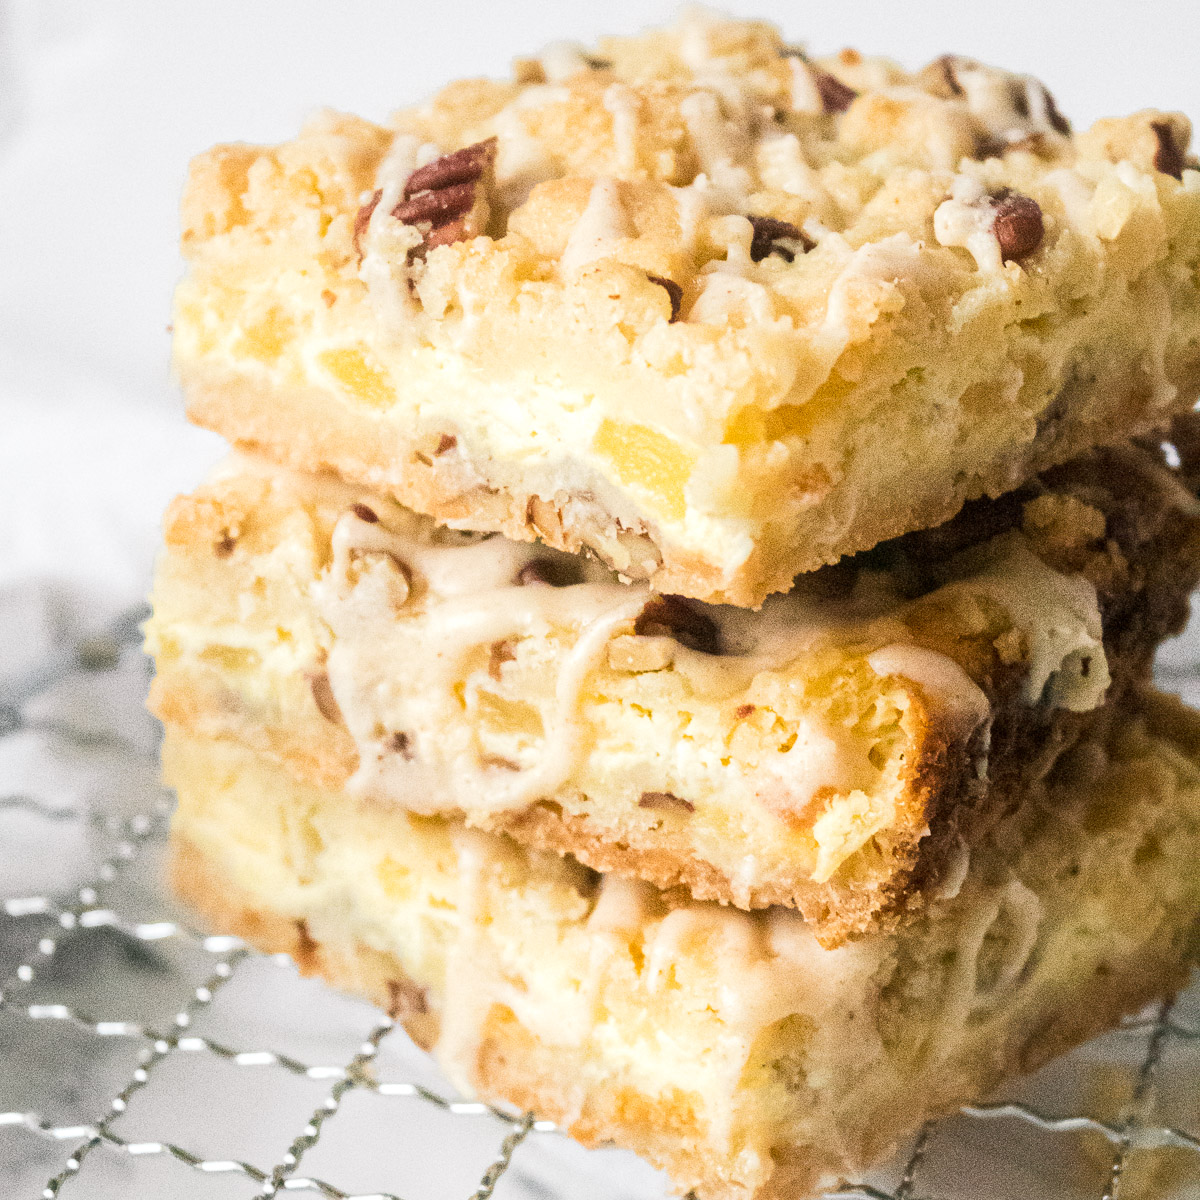 Pineapple Bars with Cream Cheese and Coconut Drizzle